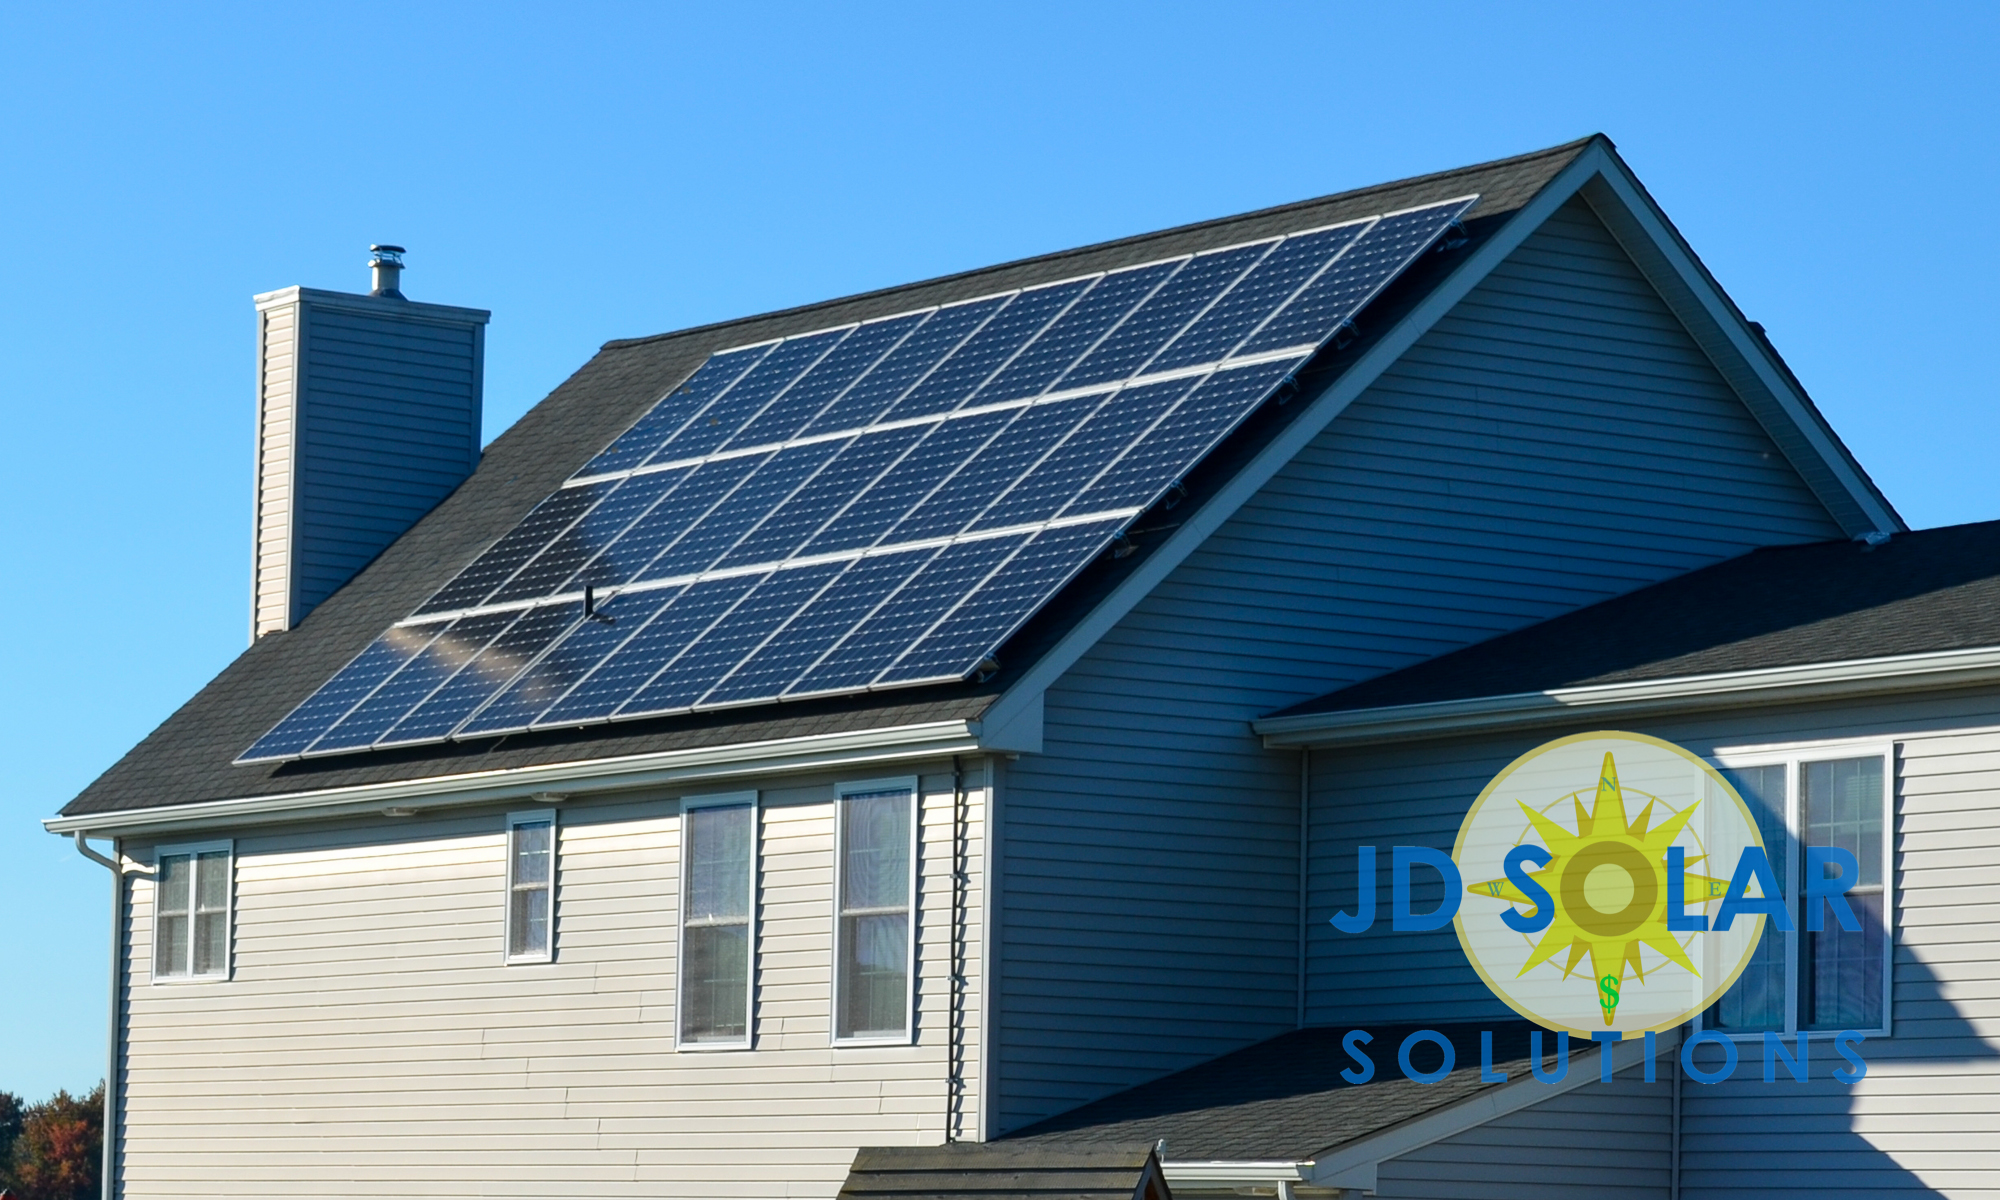 Residential JD Solar Installation